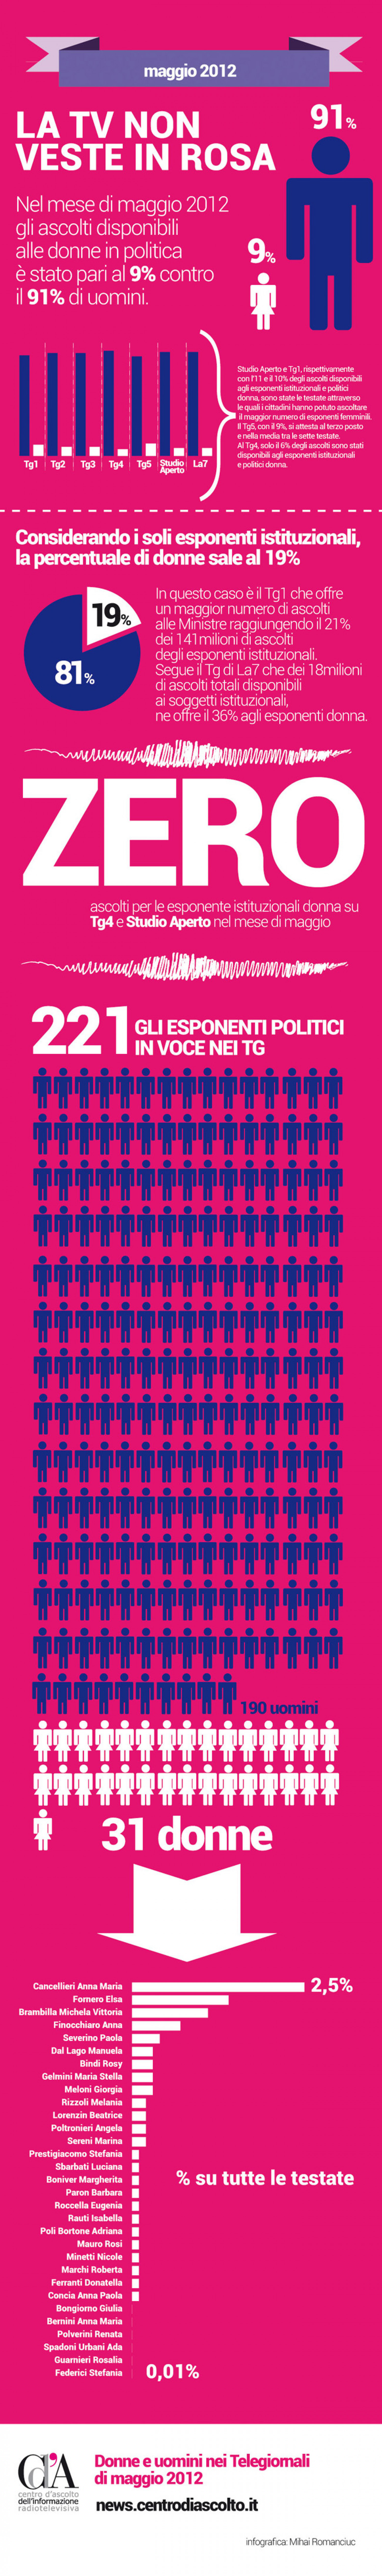 La Tv non veste in rosa Infographic